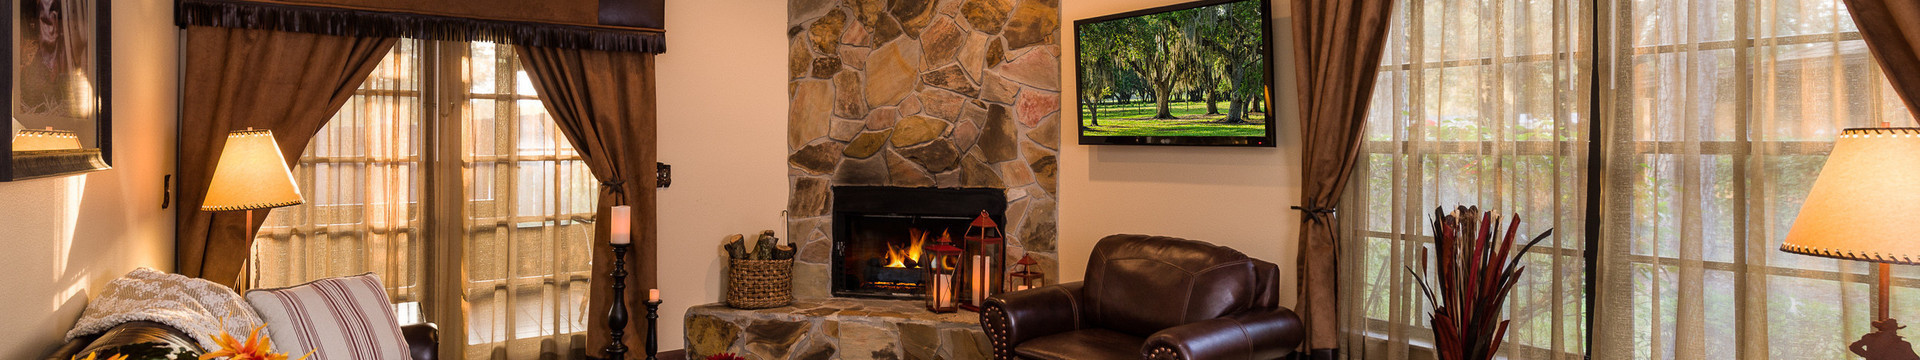 Living Room in Lodge - Westgate River Ranch